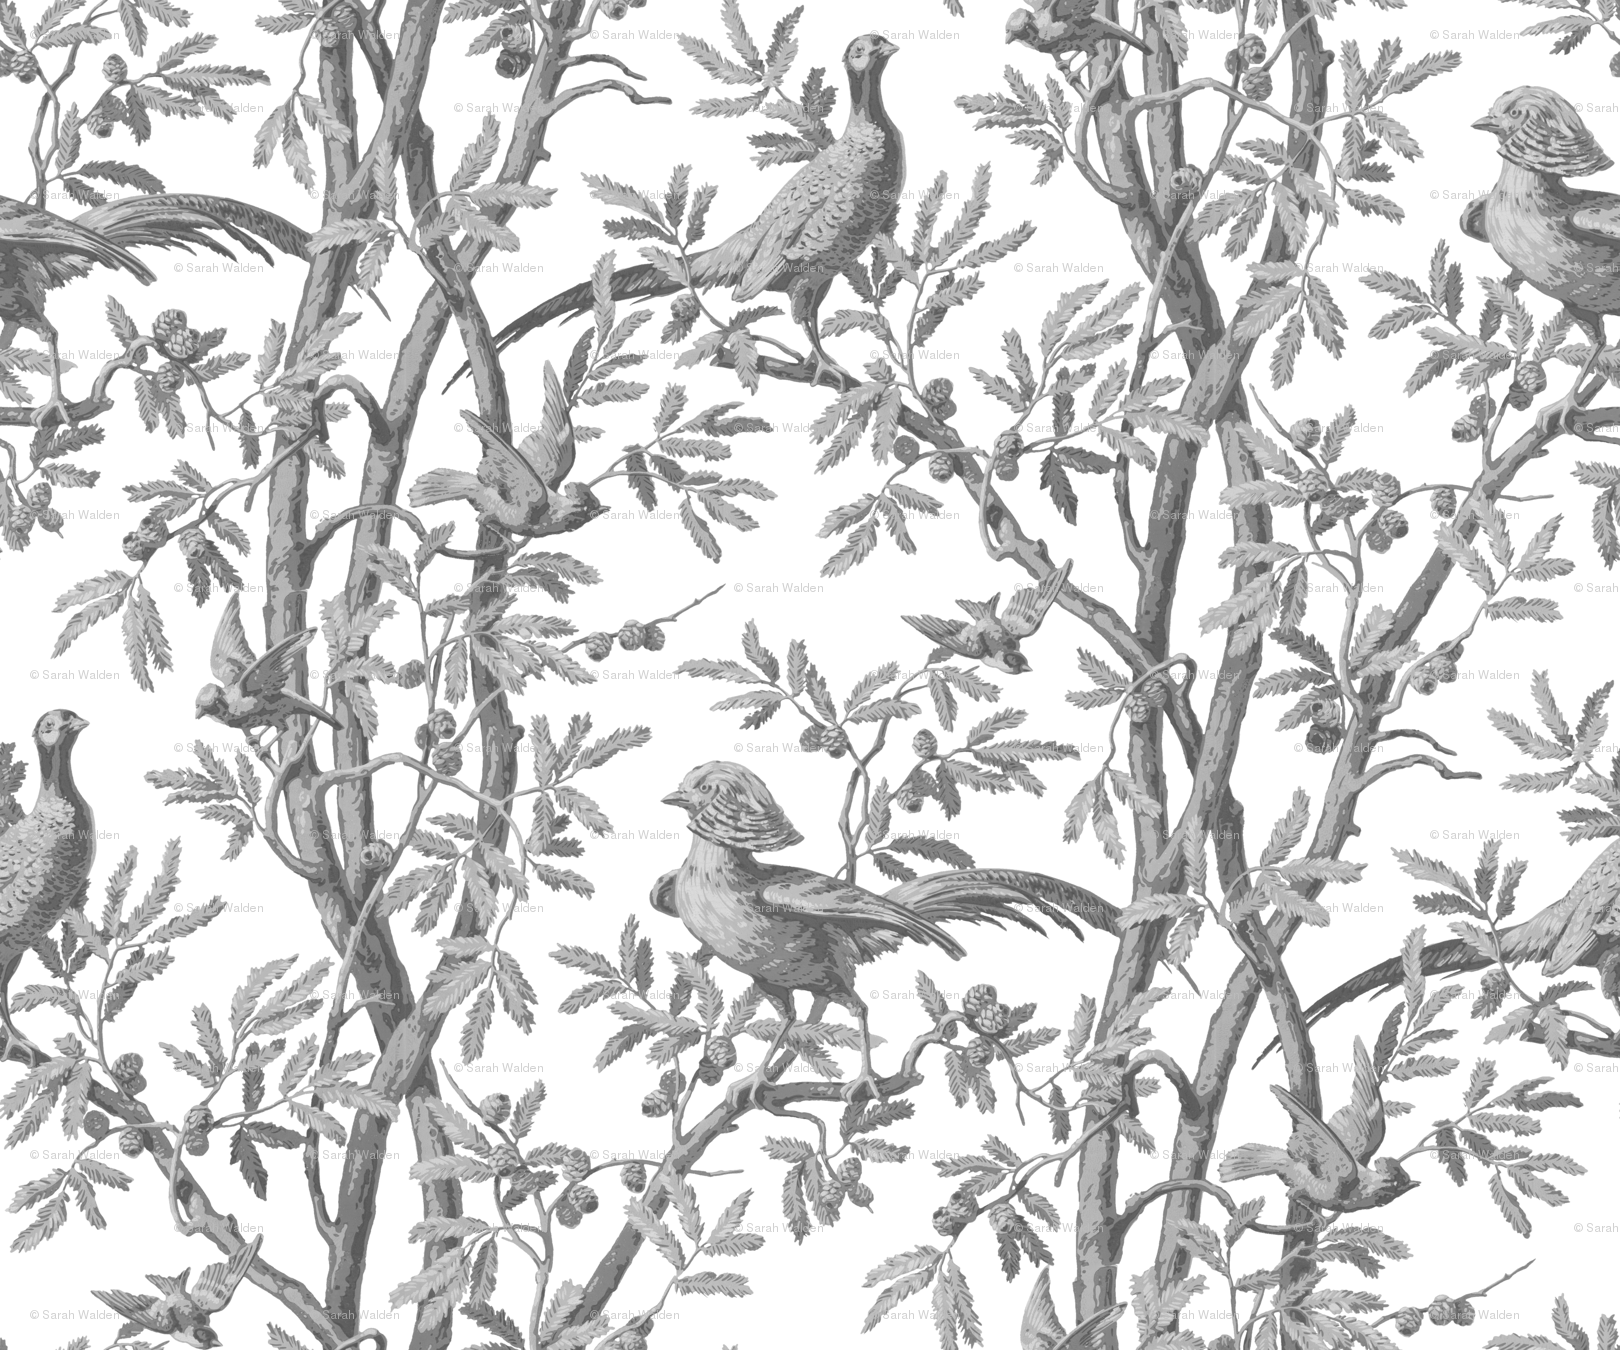 Golden Pheasants Chinoiserie Toile ~ Silver Grey on White wallpaper - peacoquettedesigns - Spoonflower